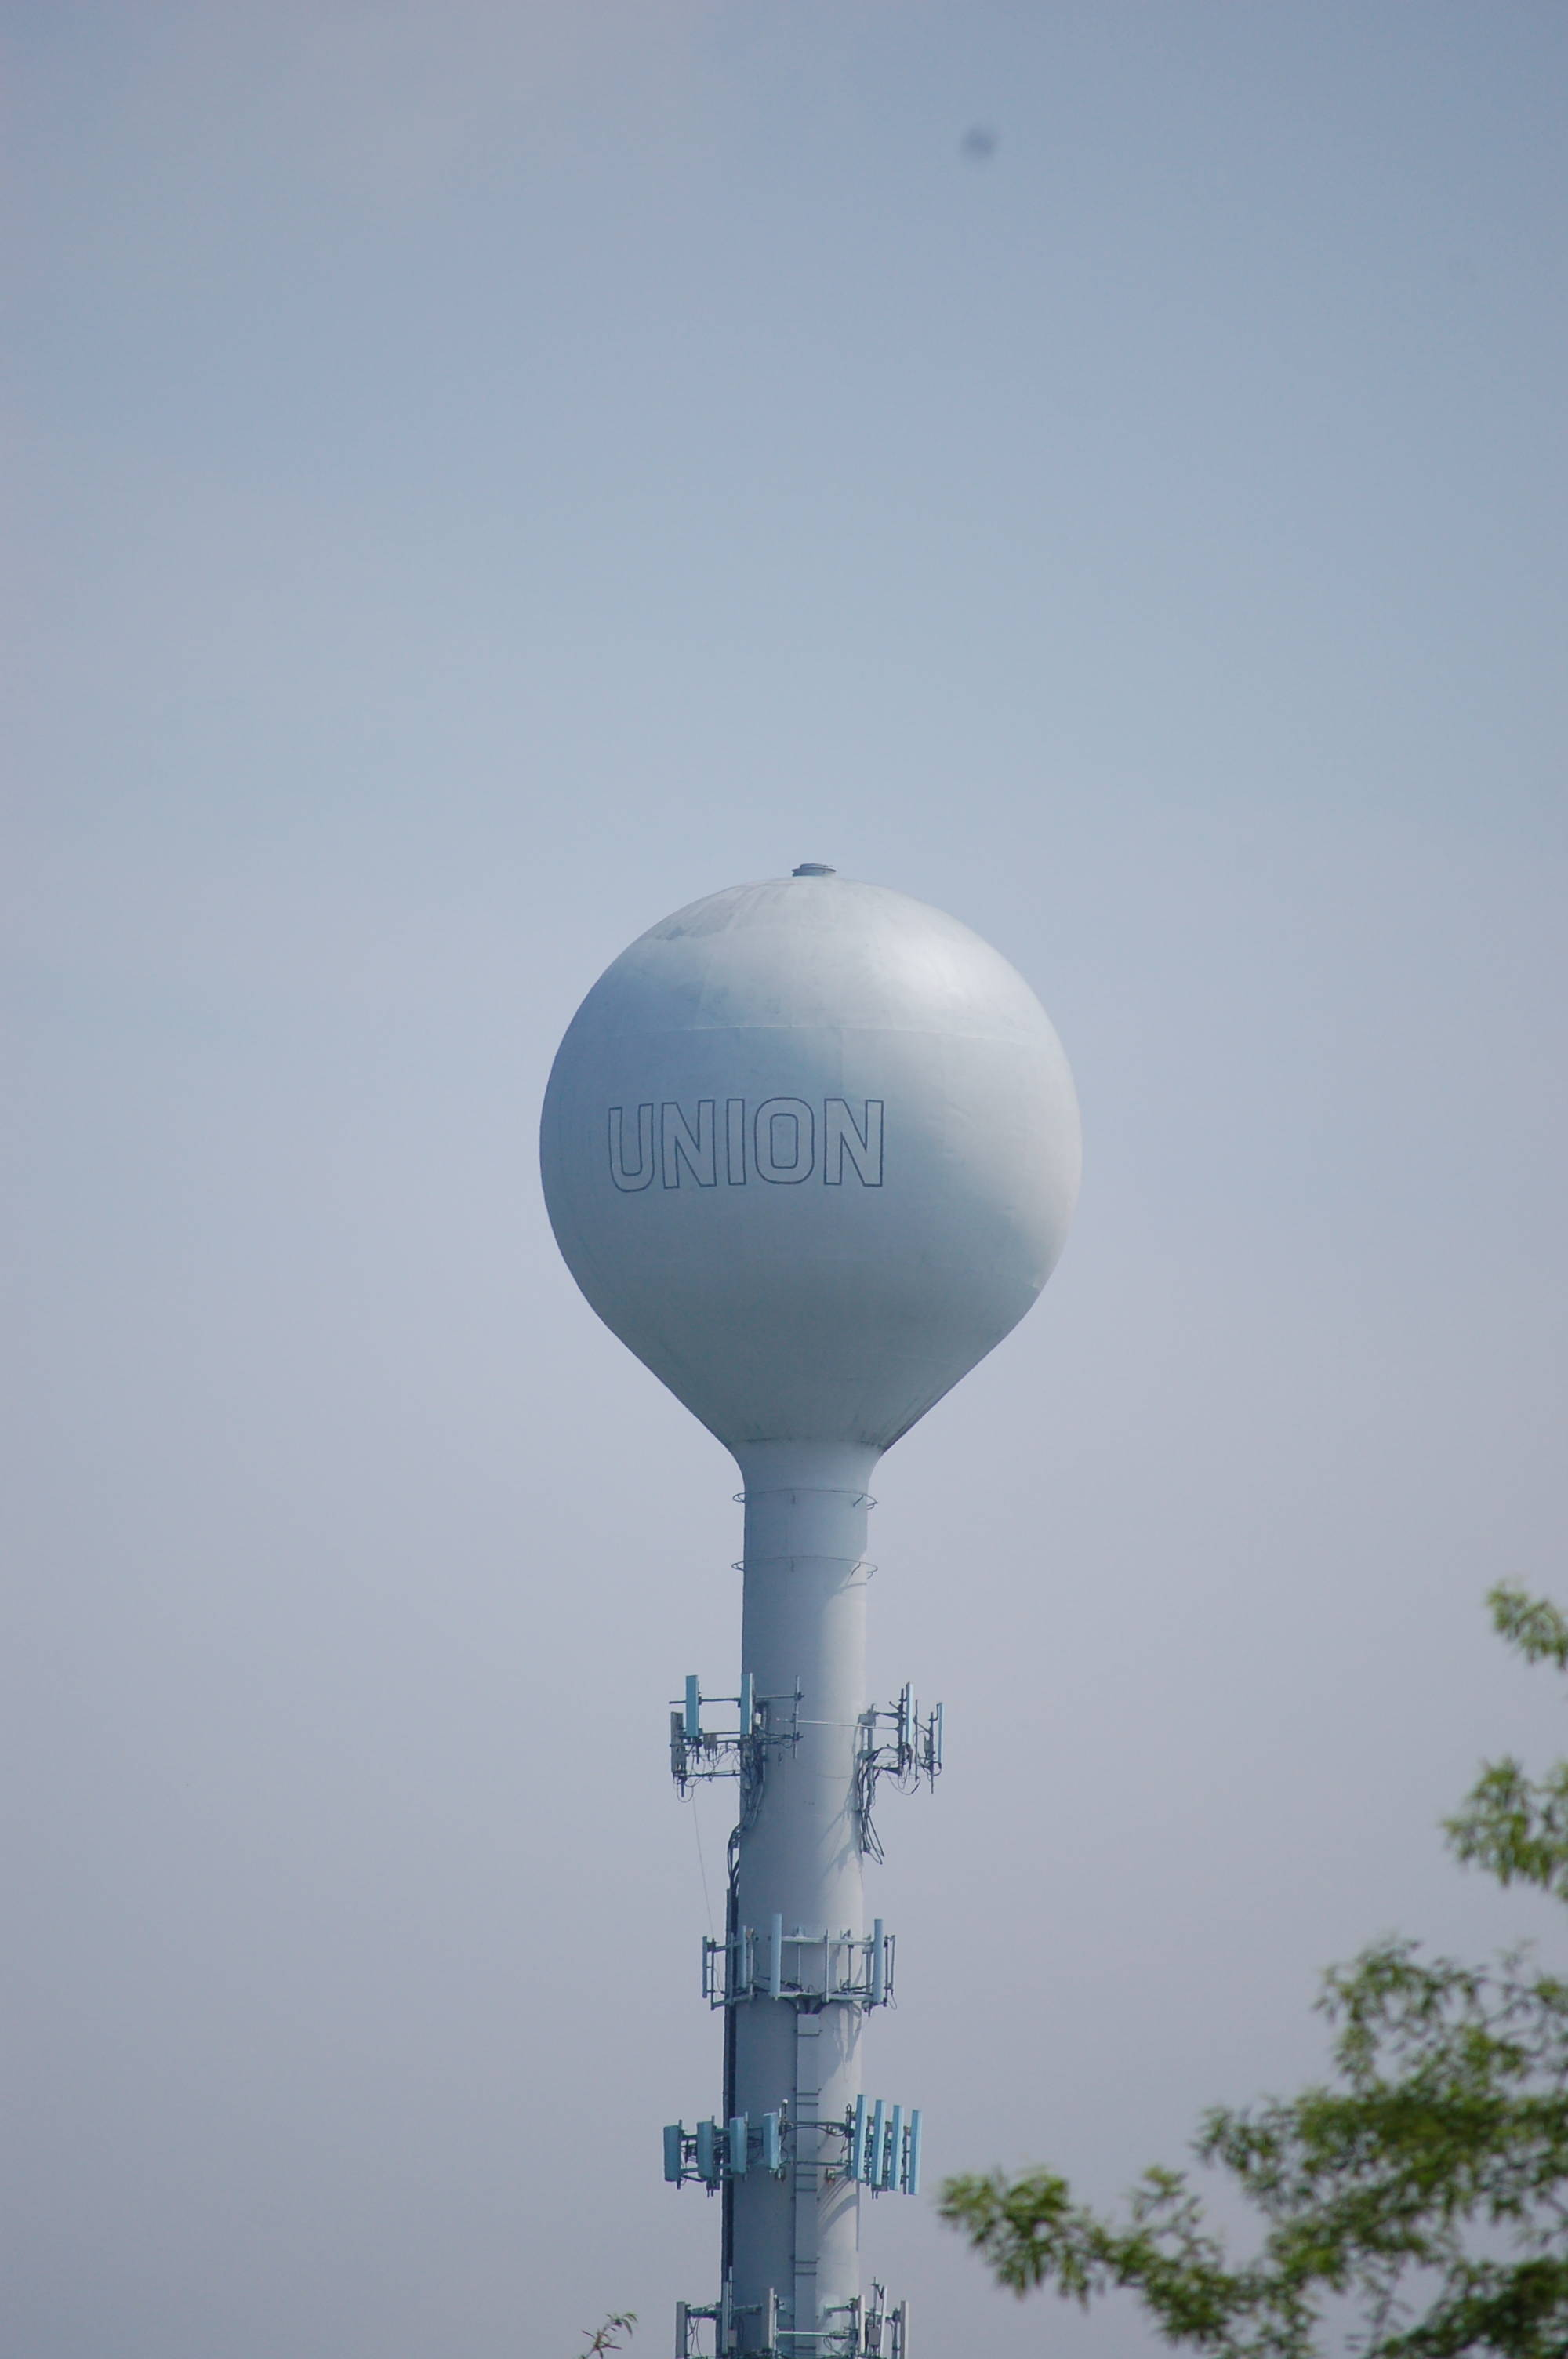 9d8c1a83f4935977eb83_9c142f6c710f00450f87_union_water_tower.jpg